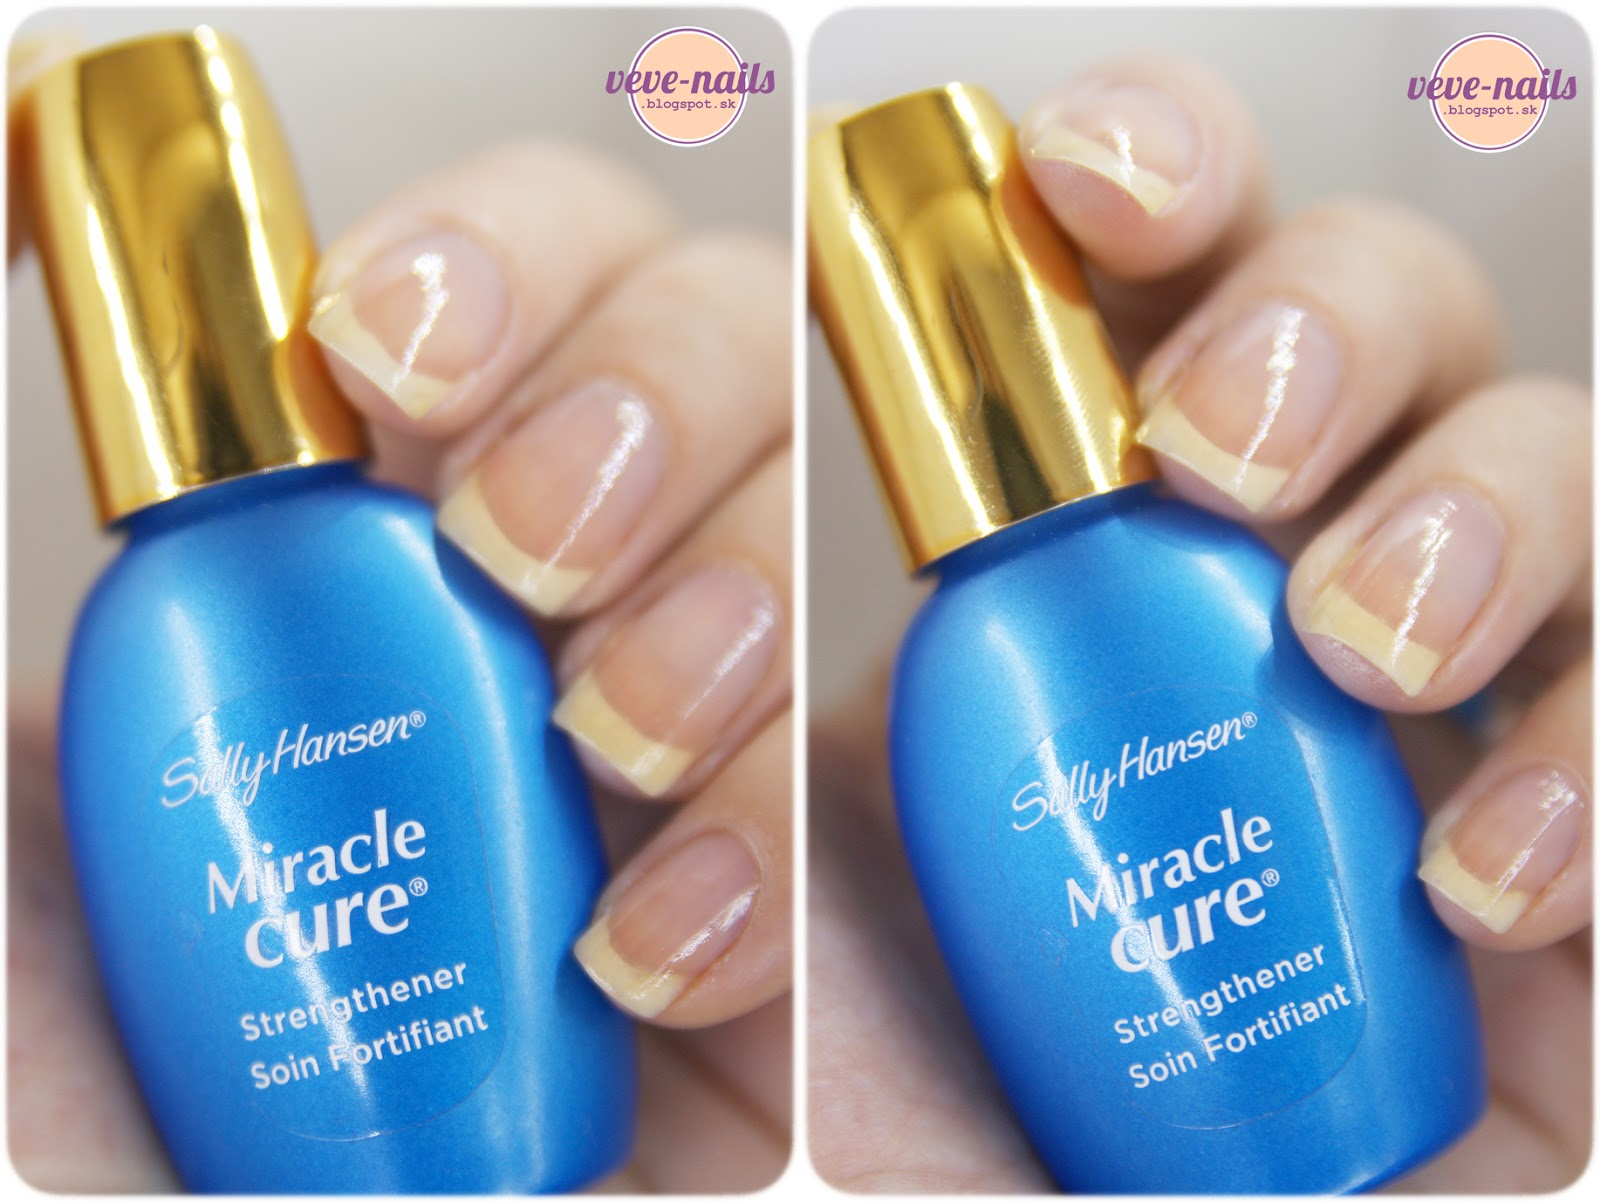 Nails Maniac Sally Hansen Strengthener